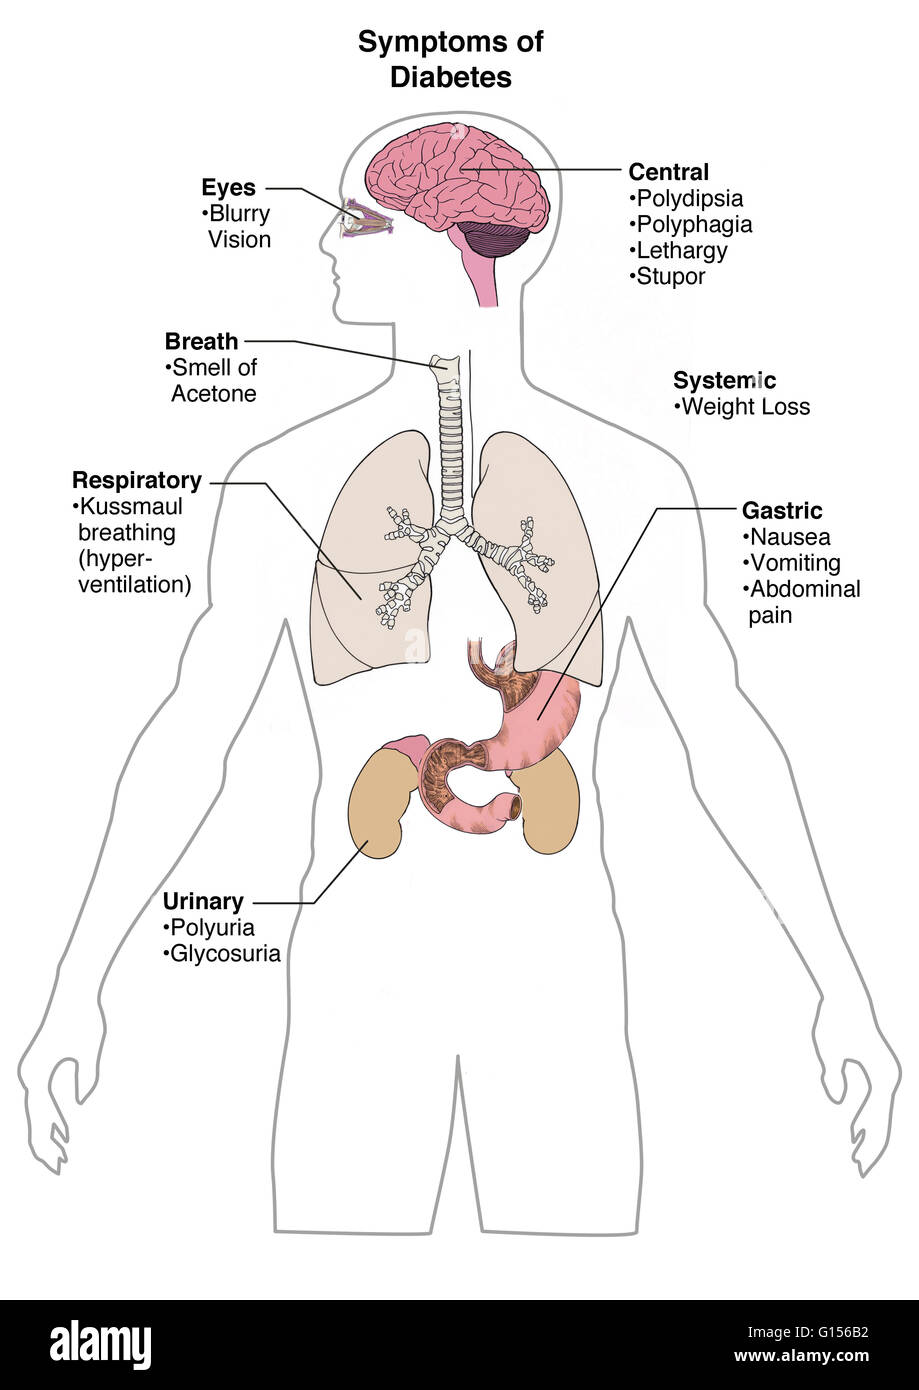 An illustration showing the many symptoms of diabetes. - Stock Image